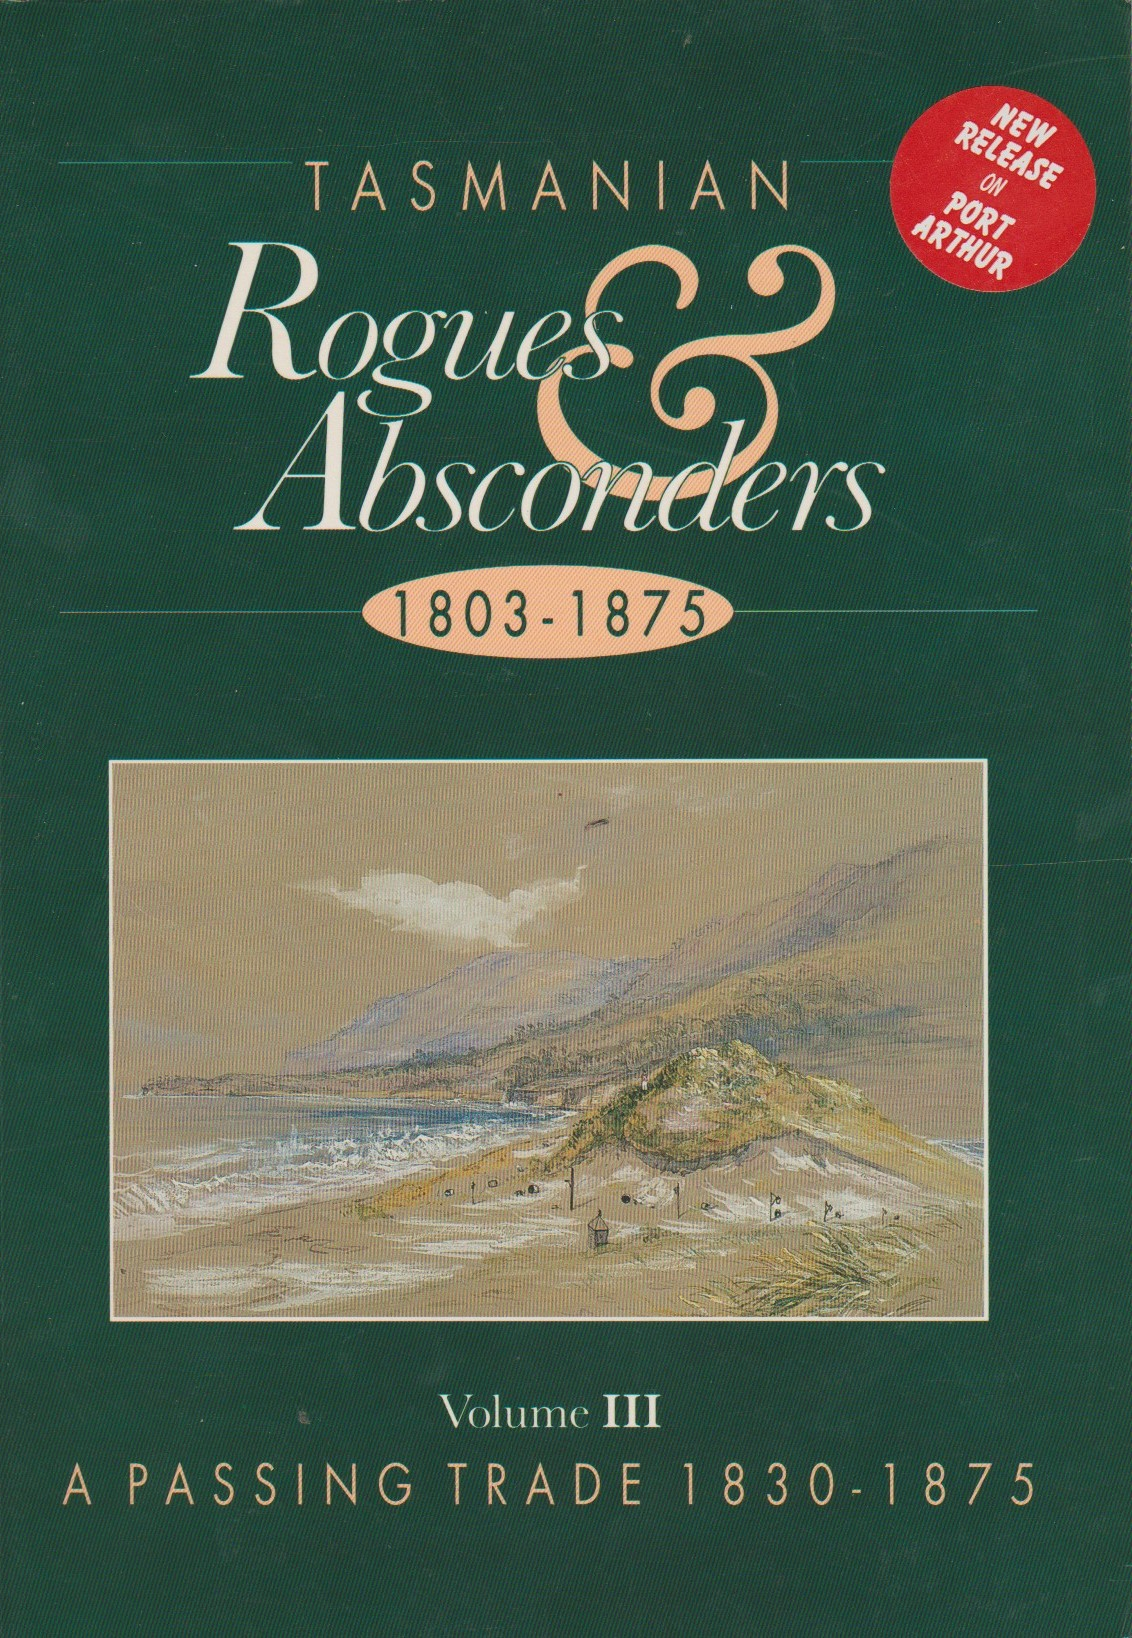 Tasmanian Rogues & Absconders Volume 3 - A Passing Trade 1830-1875